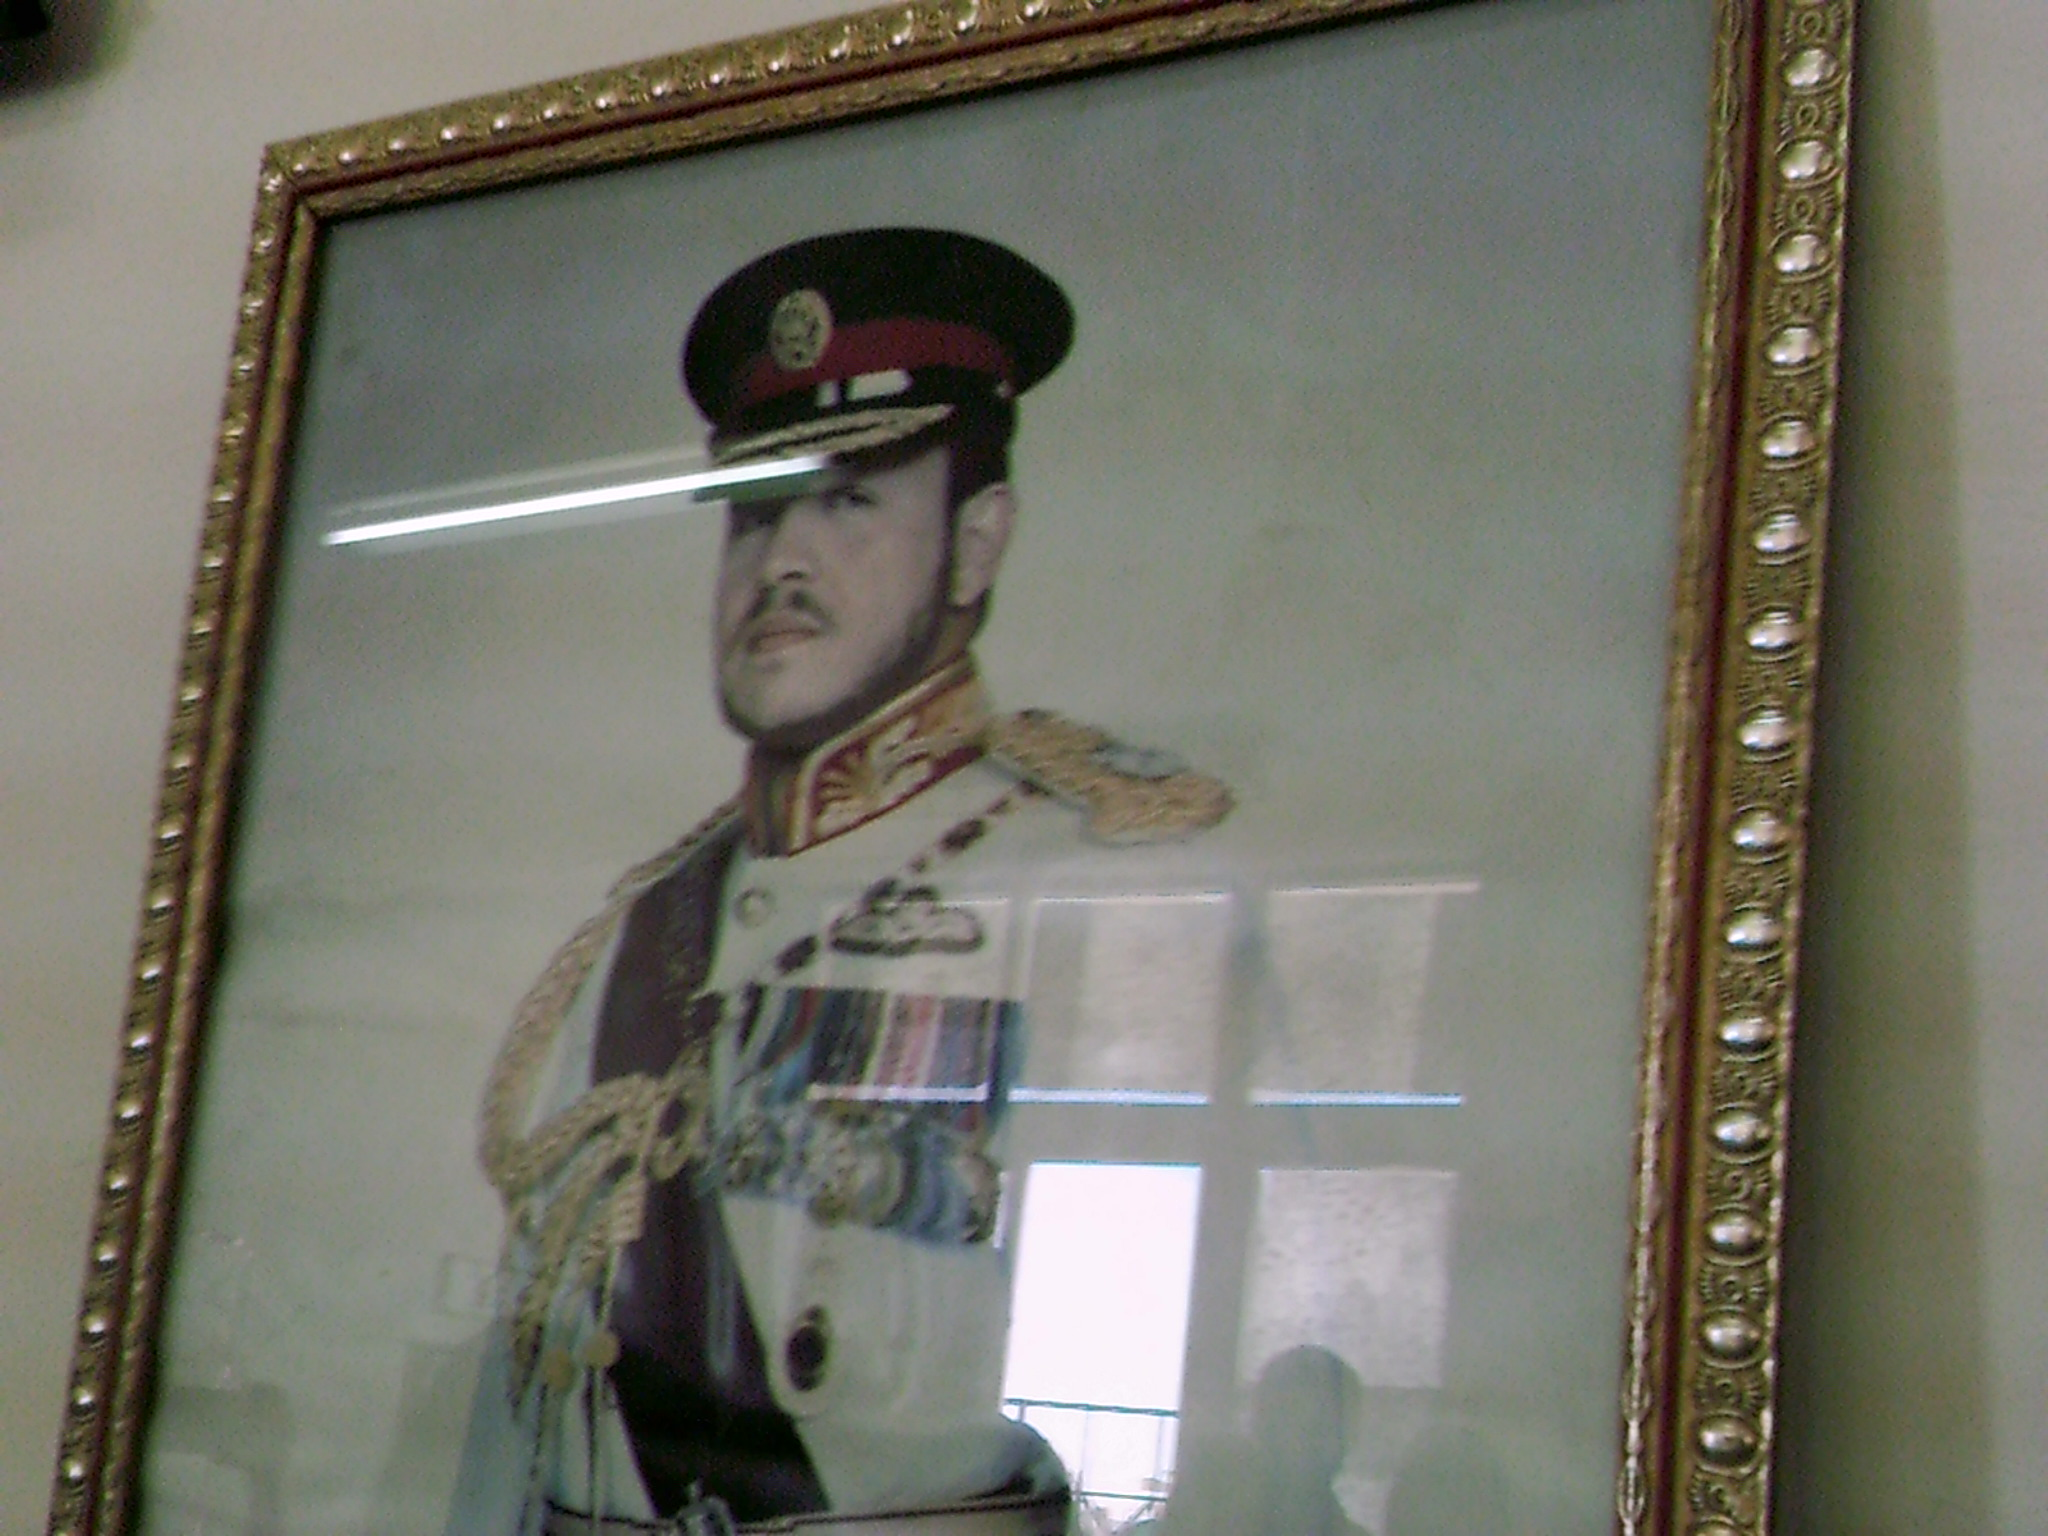 The King of Jordan, Abdullah II bin Al Hussein, is omnipresent in Jordan. This school is no exception: Paintings and photographs of the King are found at the school entrance, in the headmaster's office, and in the library.